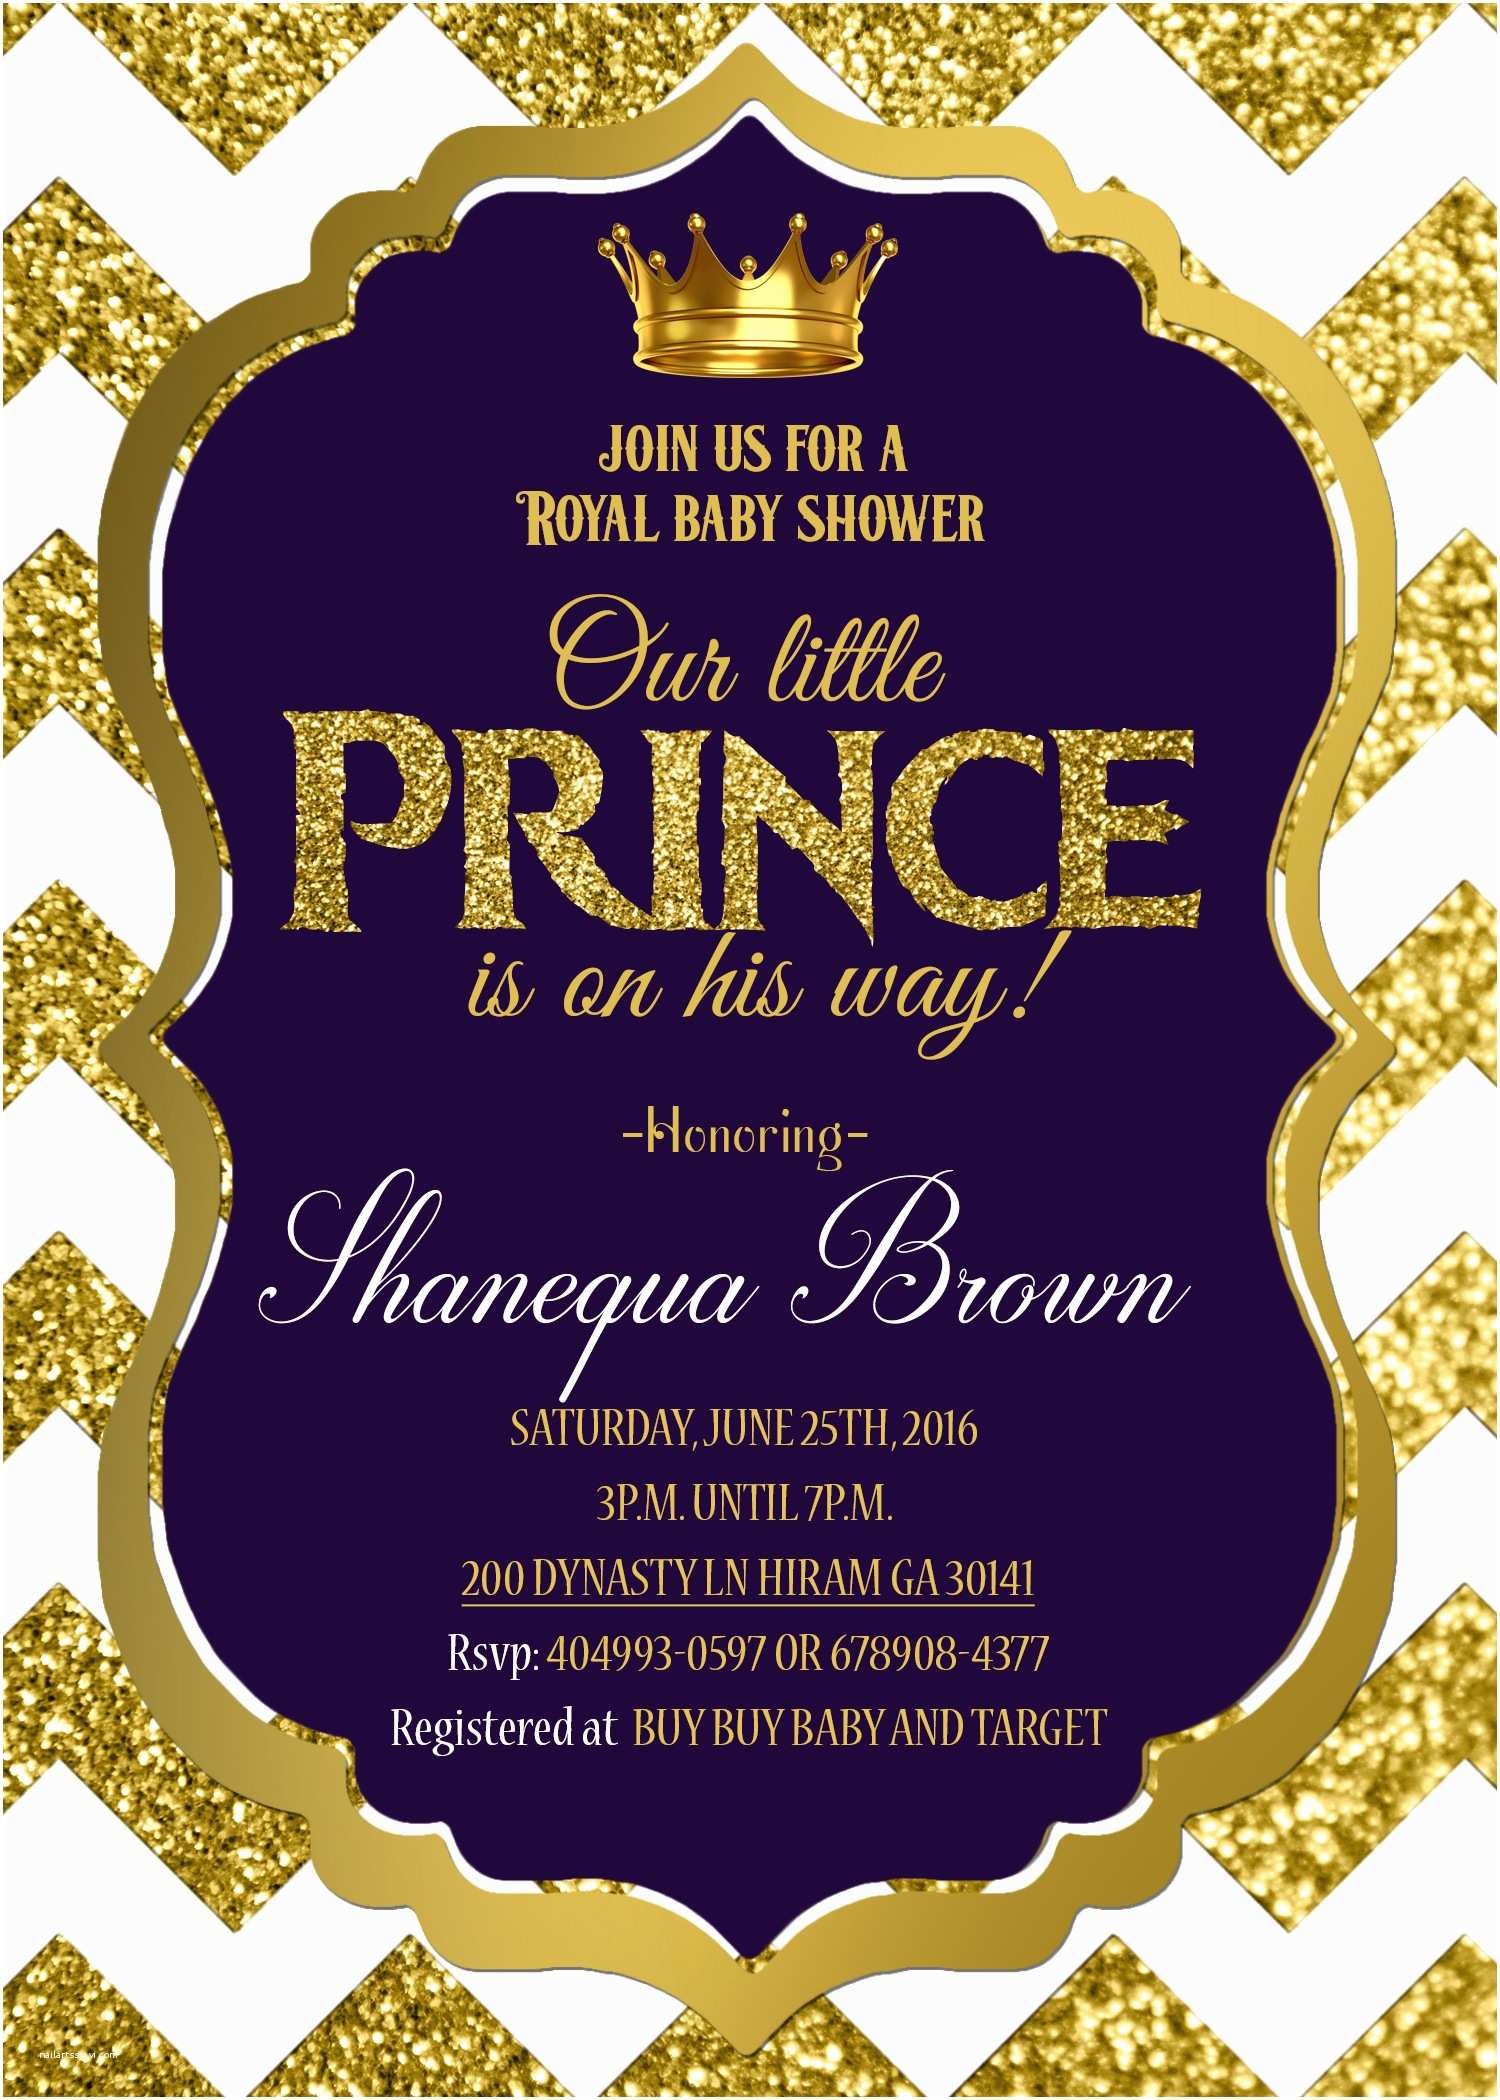 Royal Prince Baby Shower Invitations Blue and Chevron Stripes Background for Prince Baby Shower